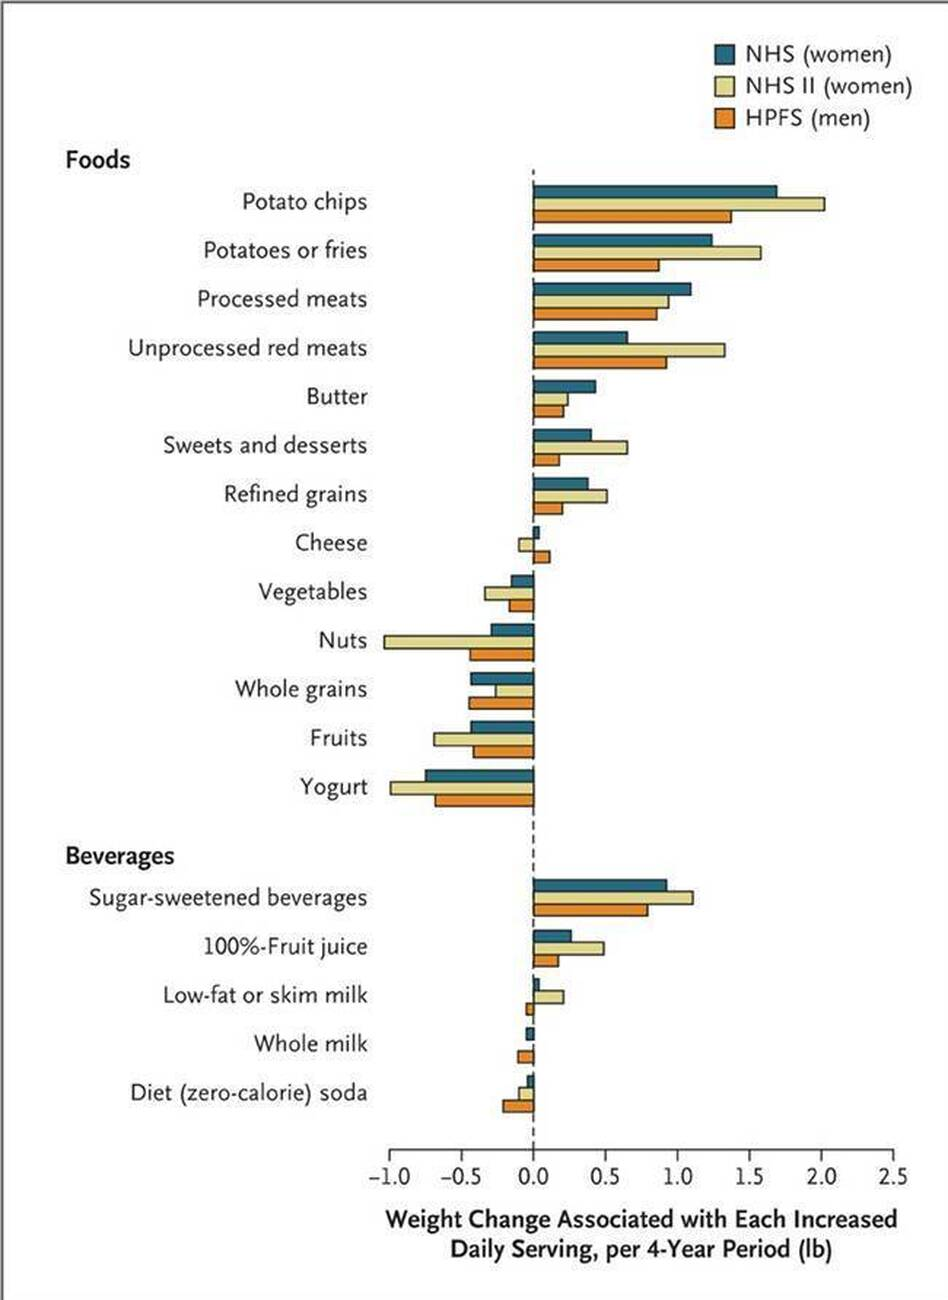 Potatoes — chips, fries and plain — lead the list of foods that can pack on the pounds. (Courtesy of NEJM)